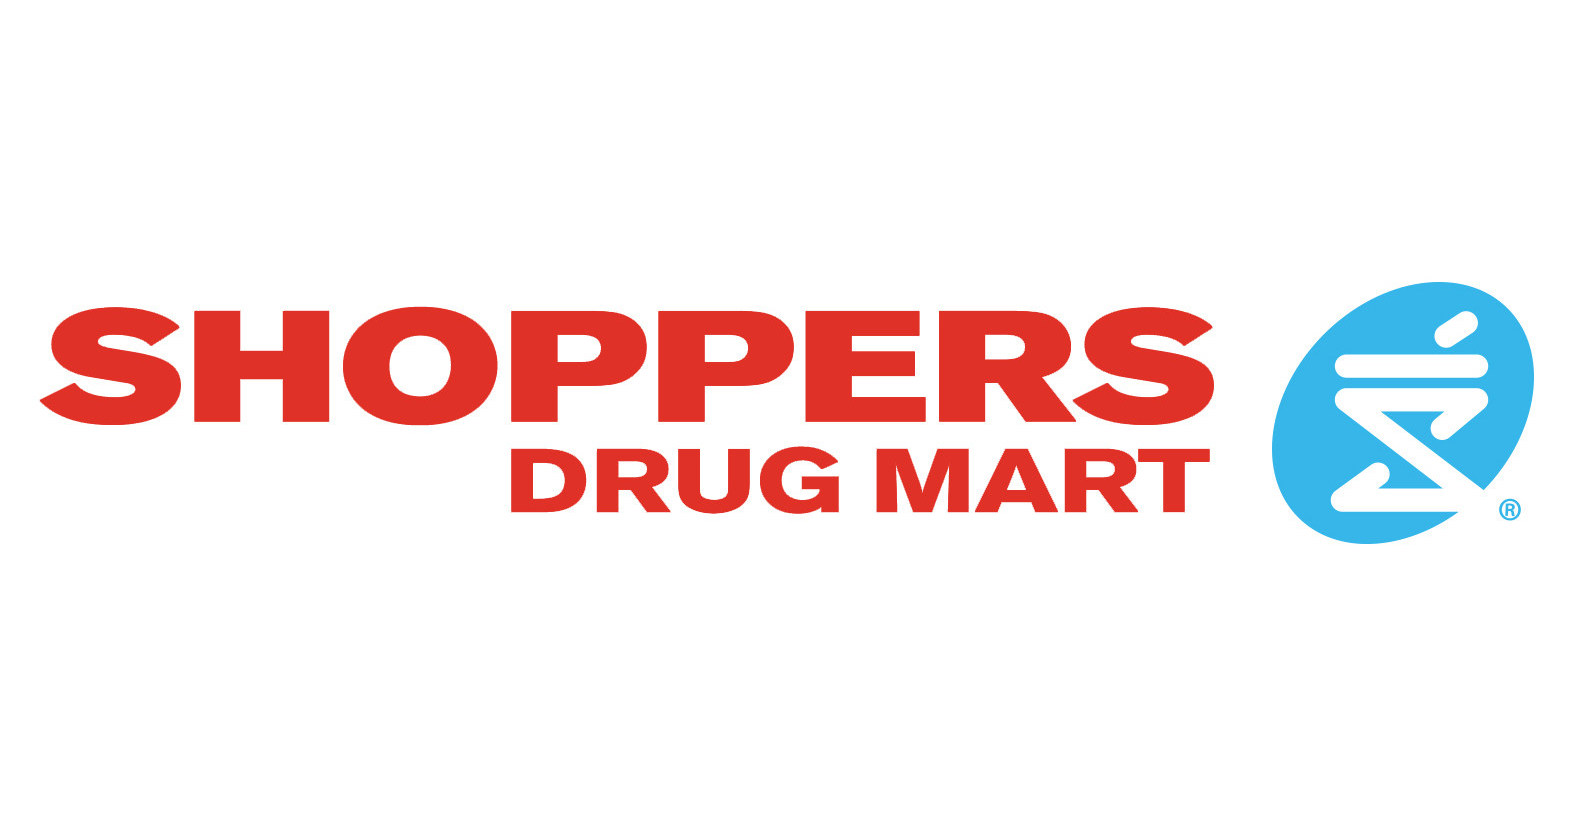 Shoppers Drug Mart Makes Rapid COVID-19 Screening Available for Customers in Ontario and Alberta